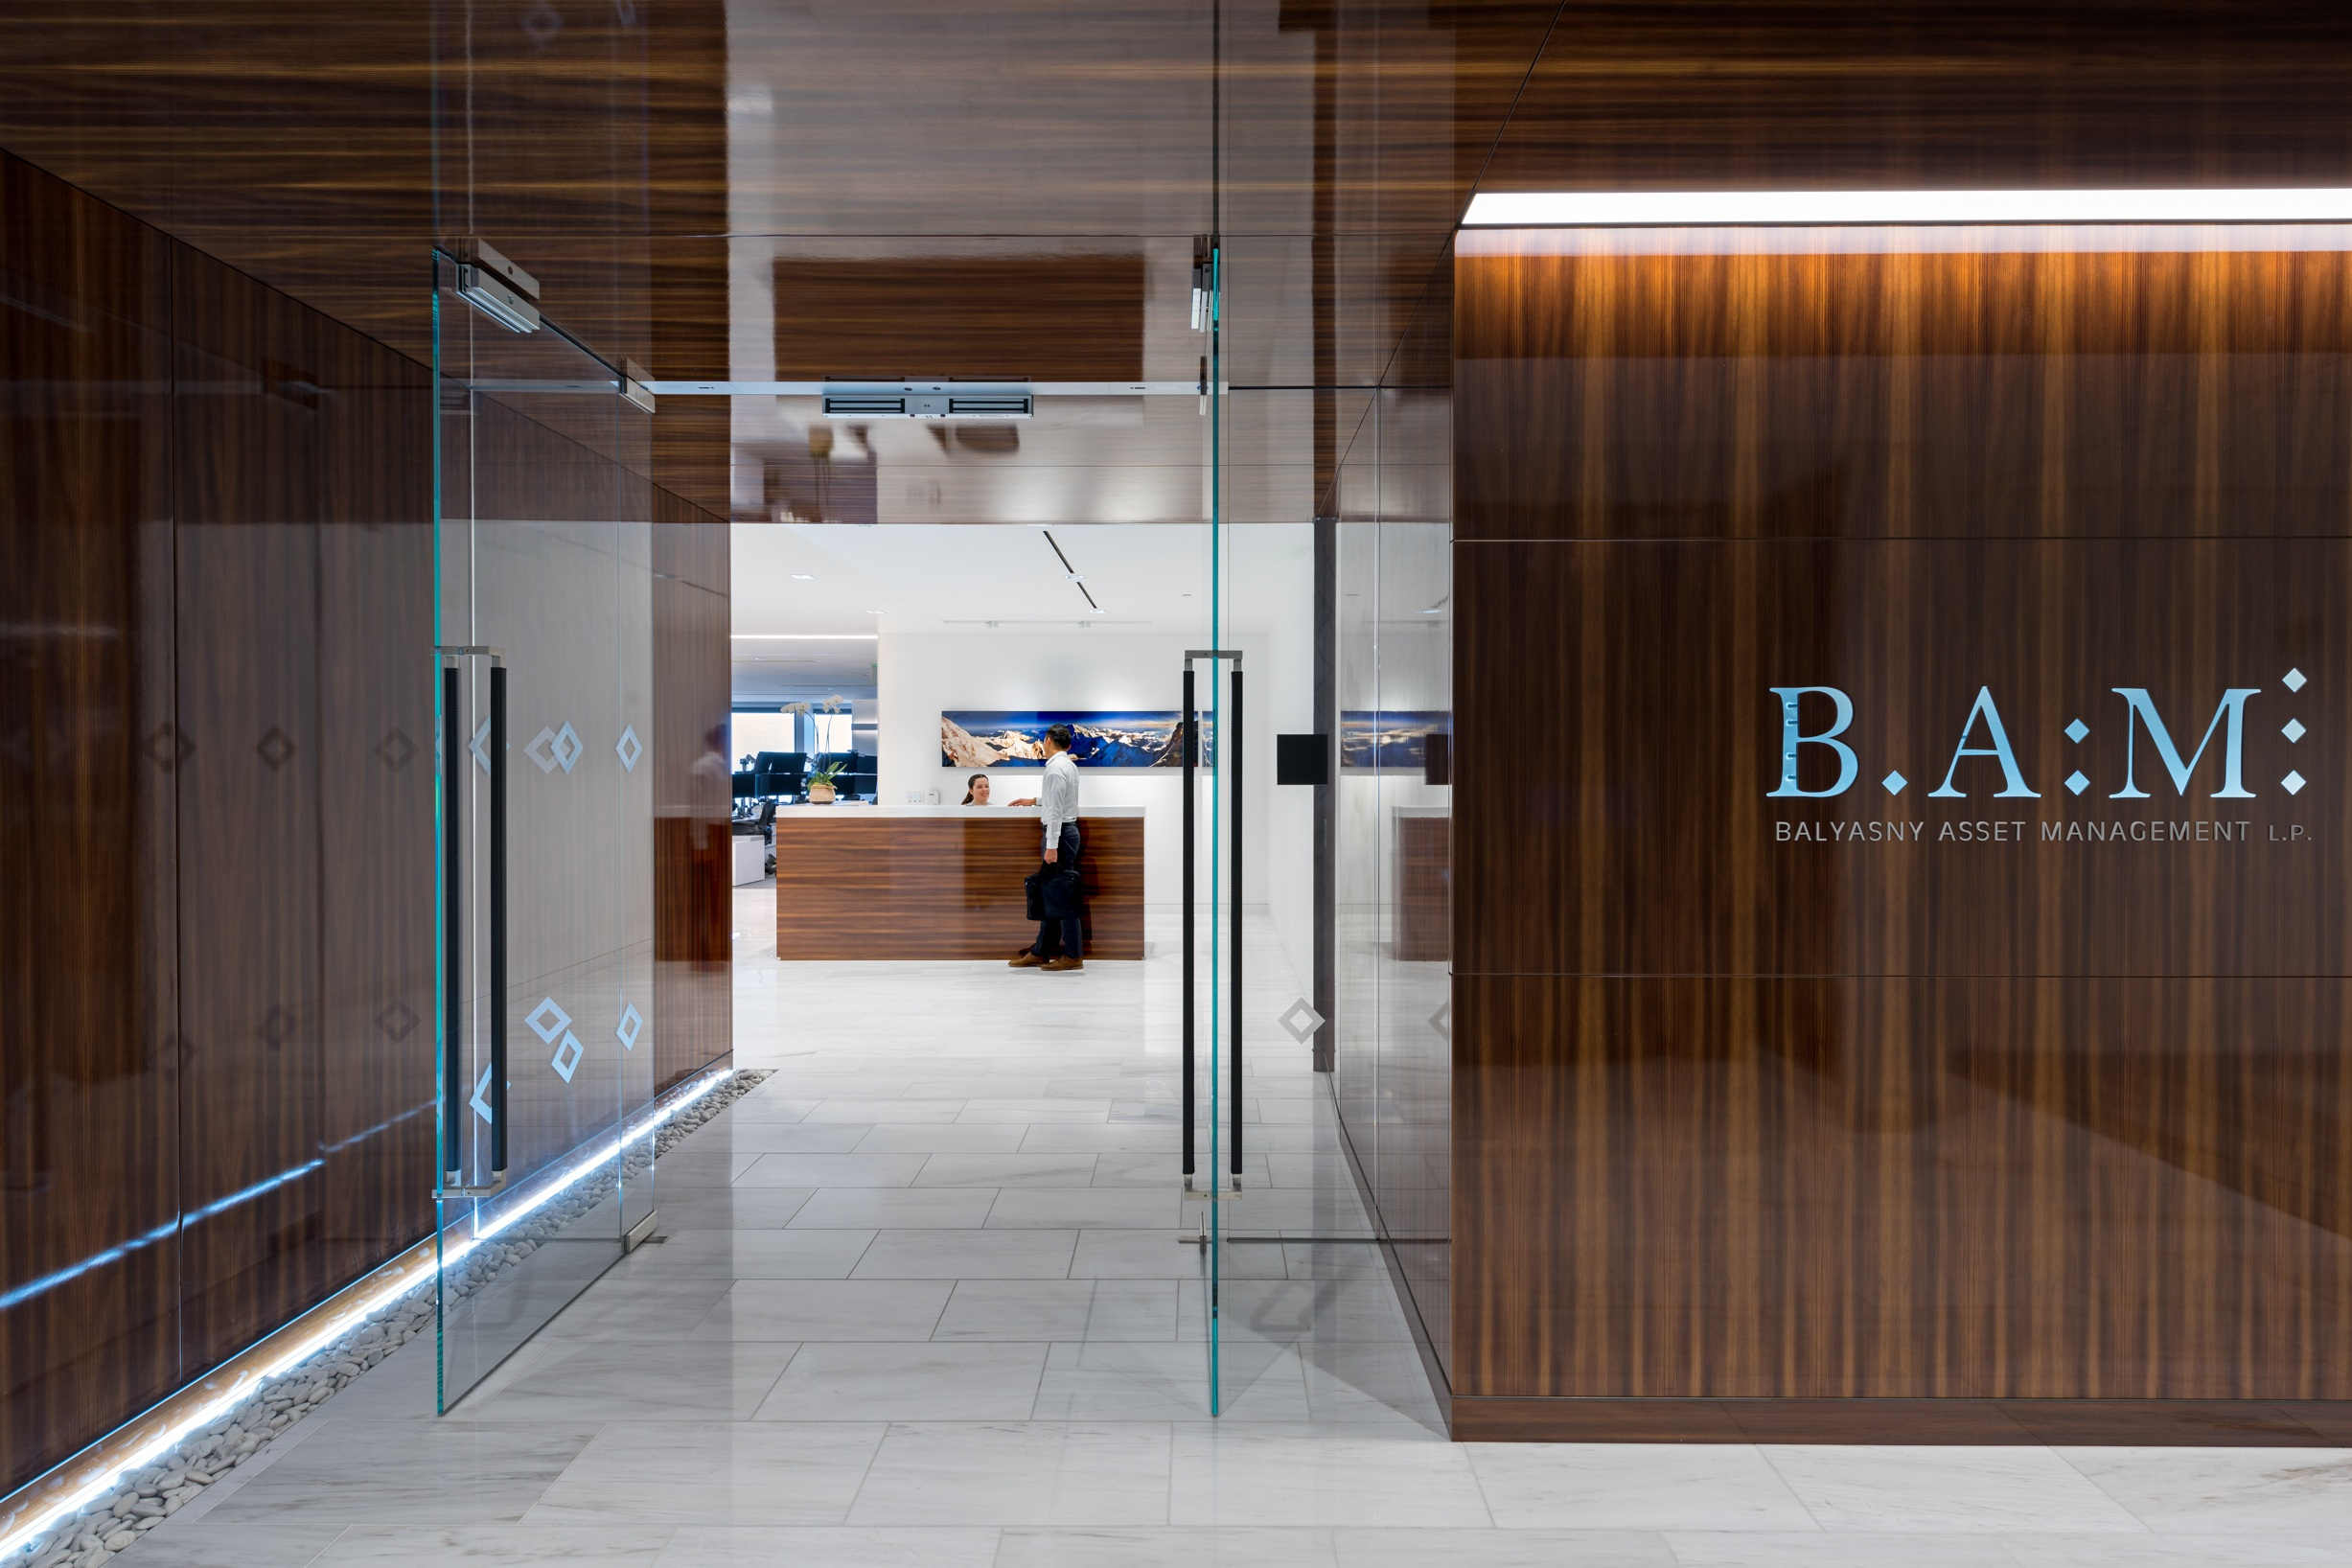 Balyasny Asset Management San Francisco